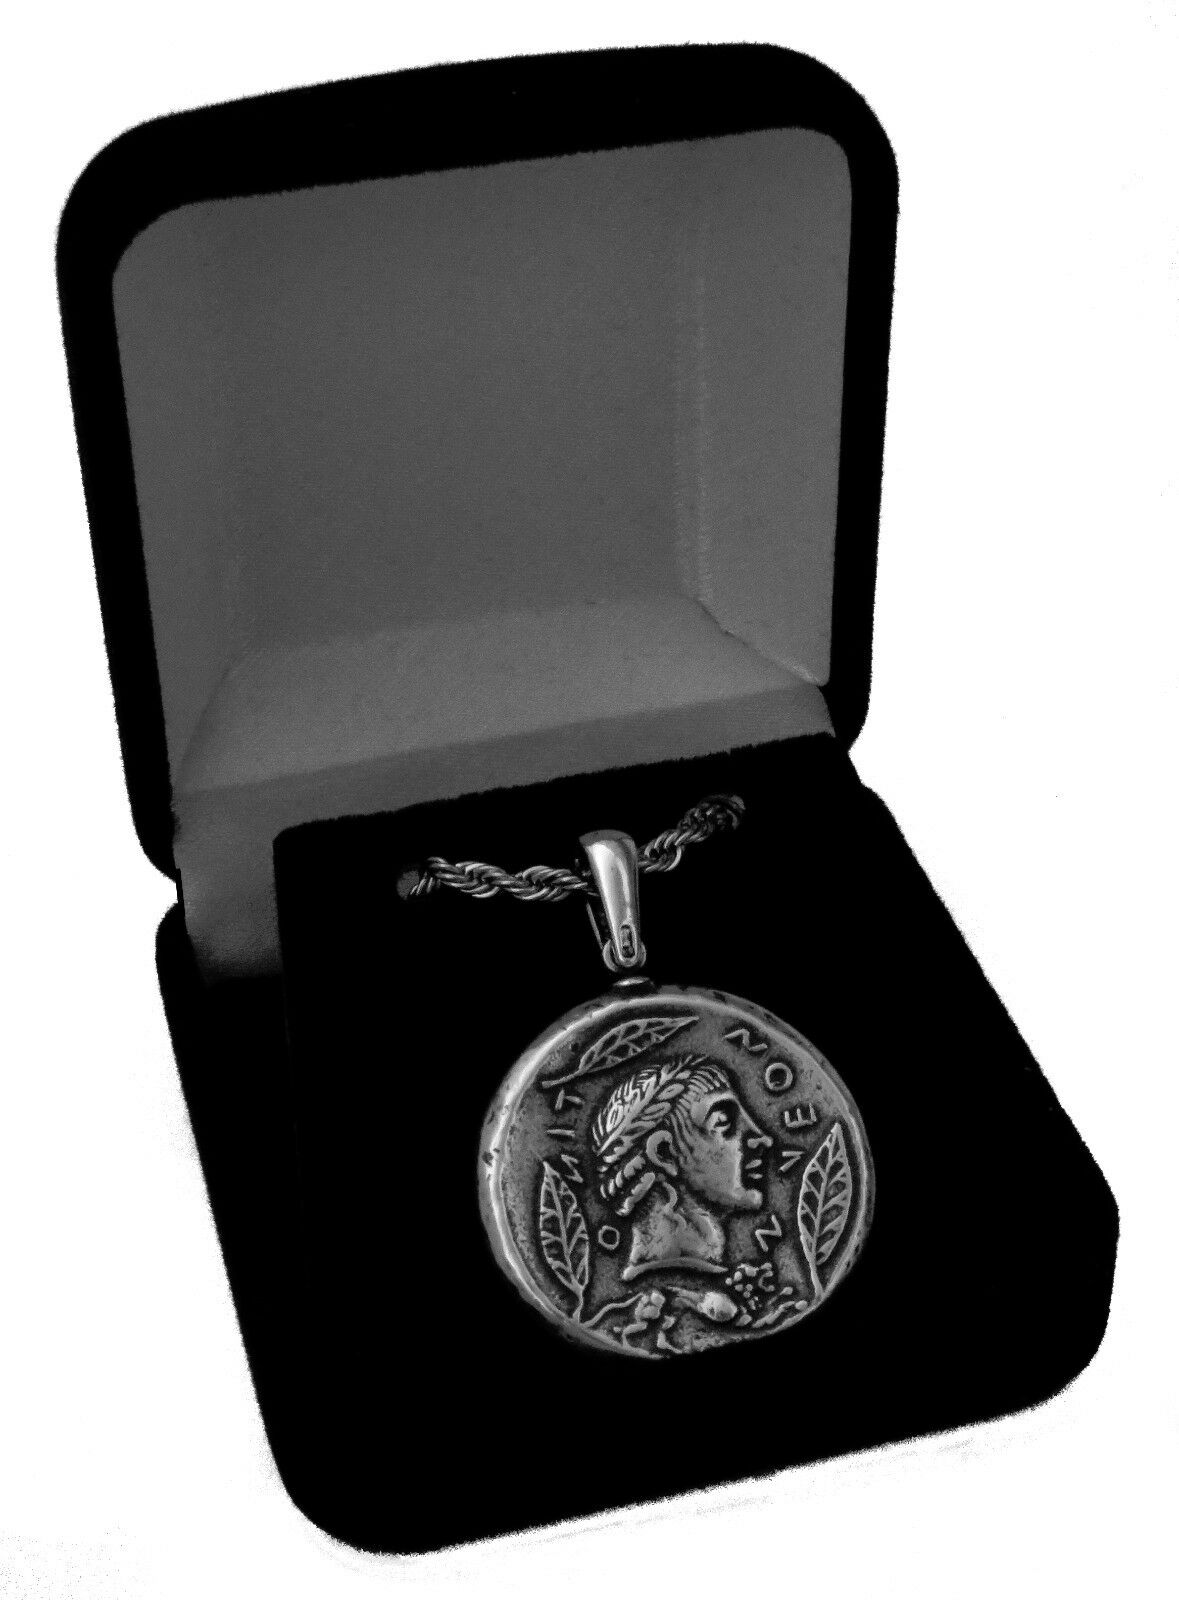 Percy Jackson Necklace, APOLLO / Charioteer, Pendant & Chain,God of the Sun,27-S